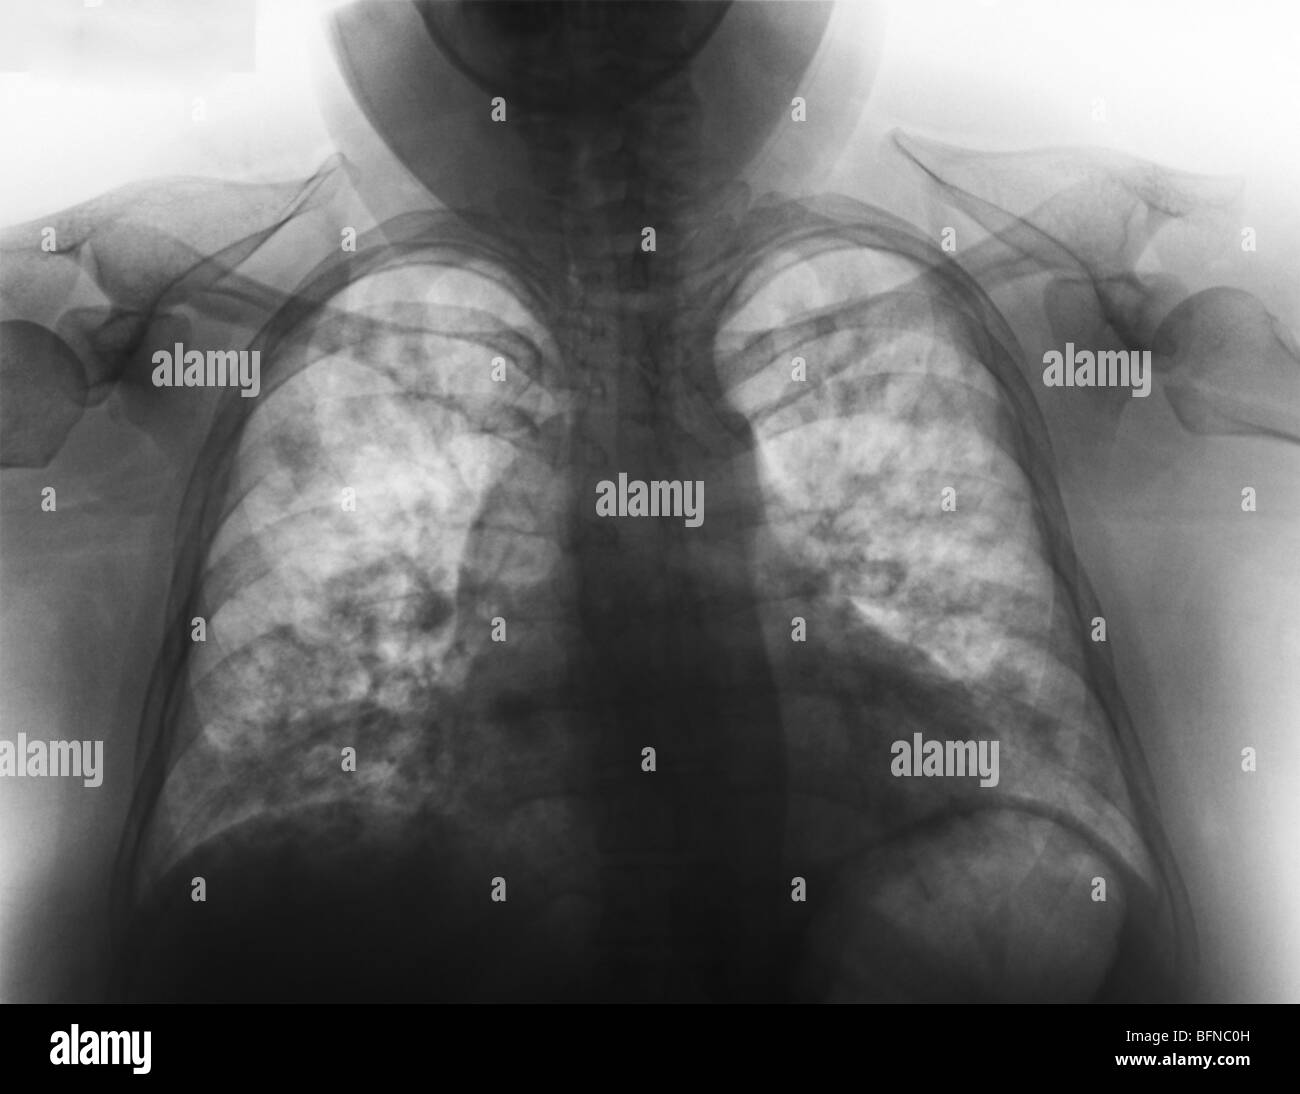 Abnormal chest x-ray showing pneumonia in a 27 year old female with influenza. - Stock Image